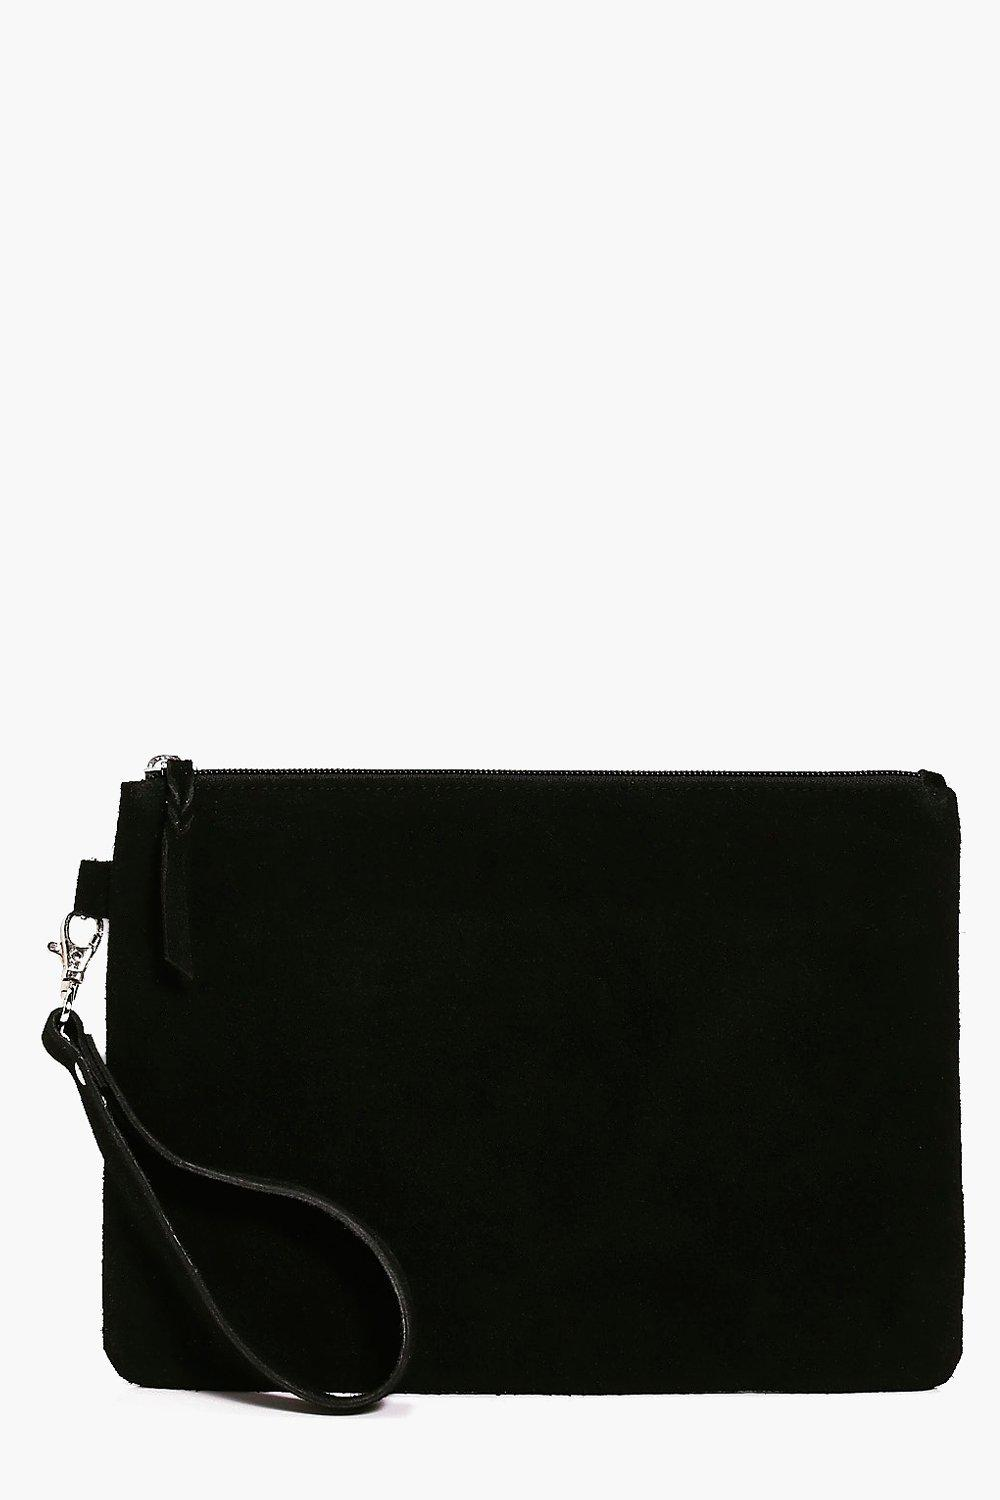 Boutique Leather Zip Top Clutch - black - Lucy Bou